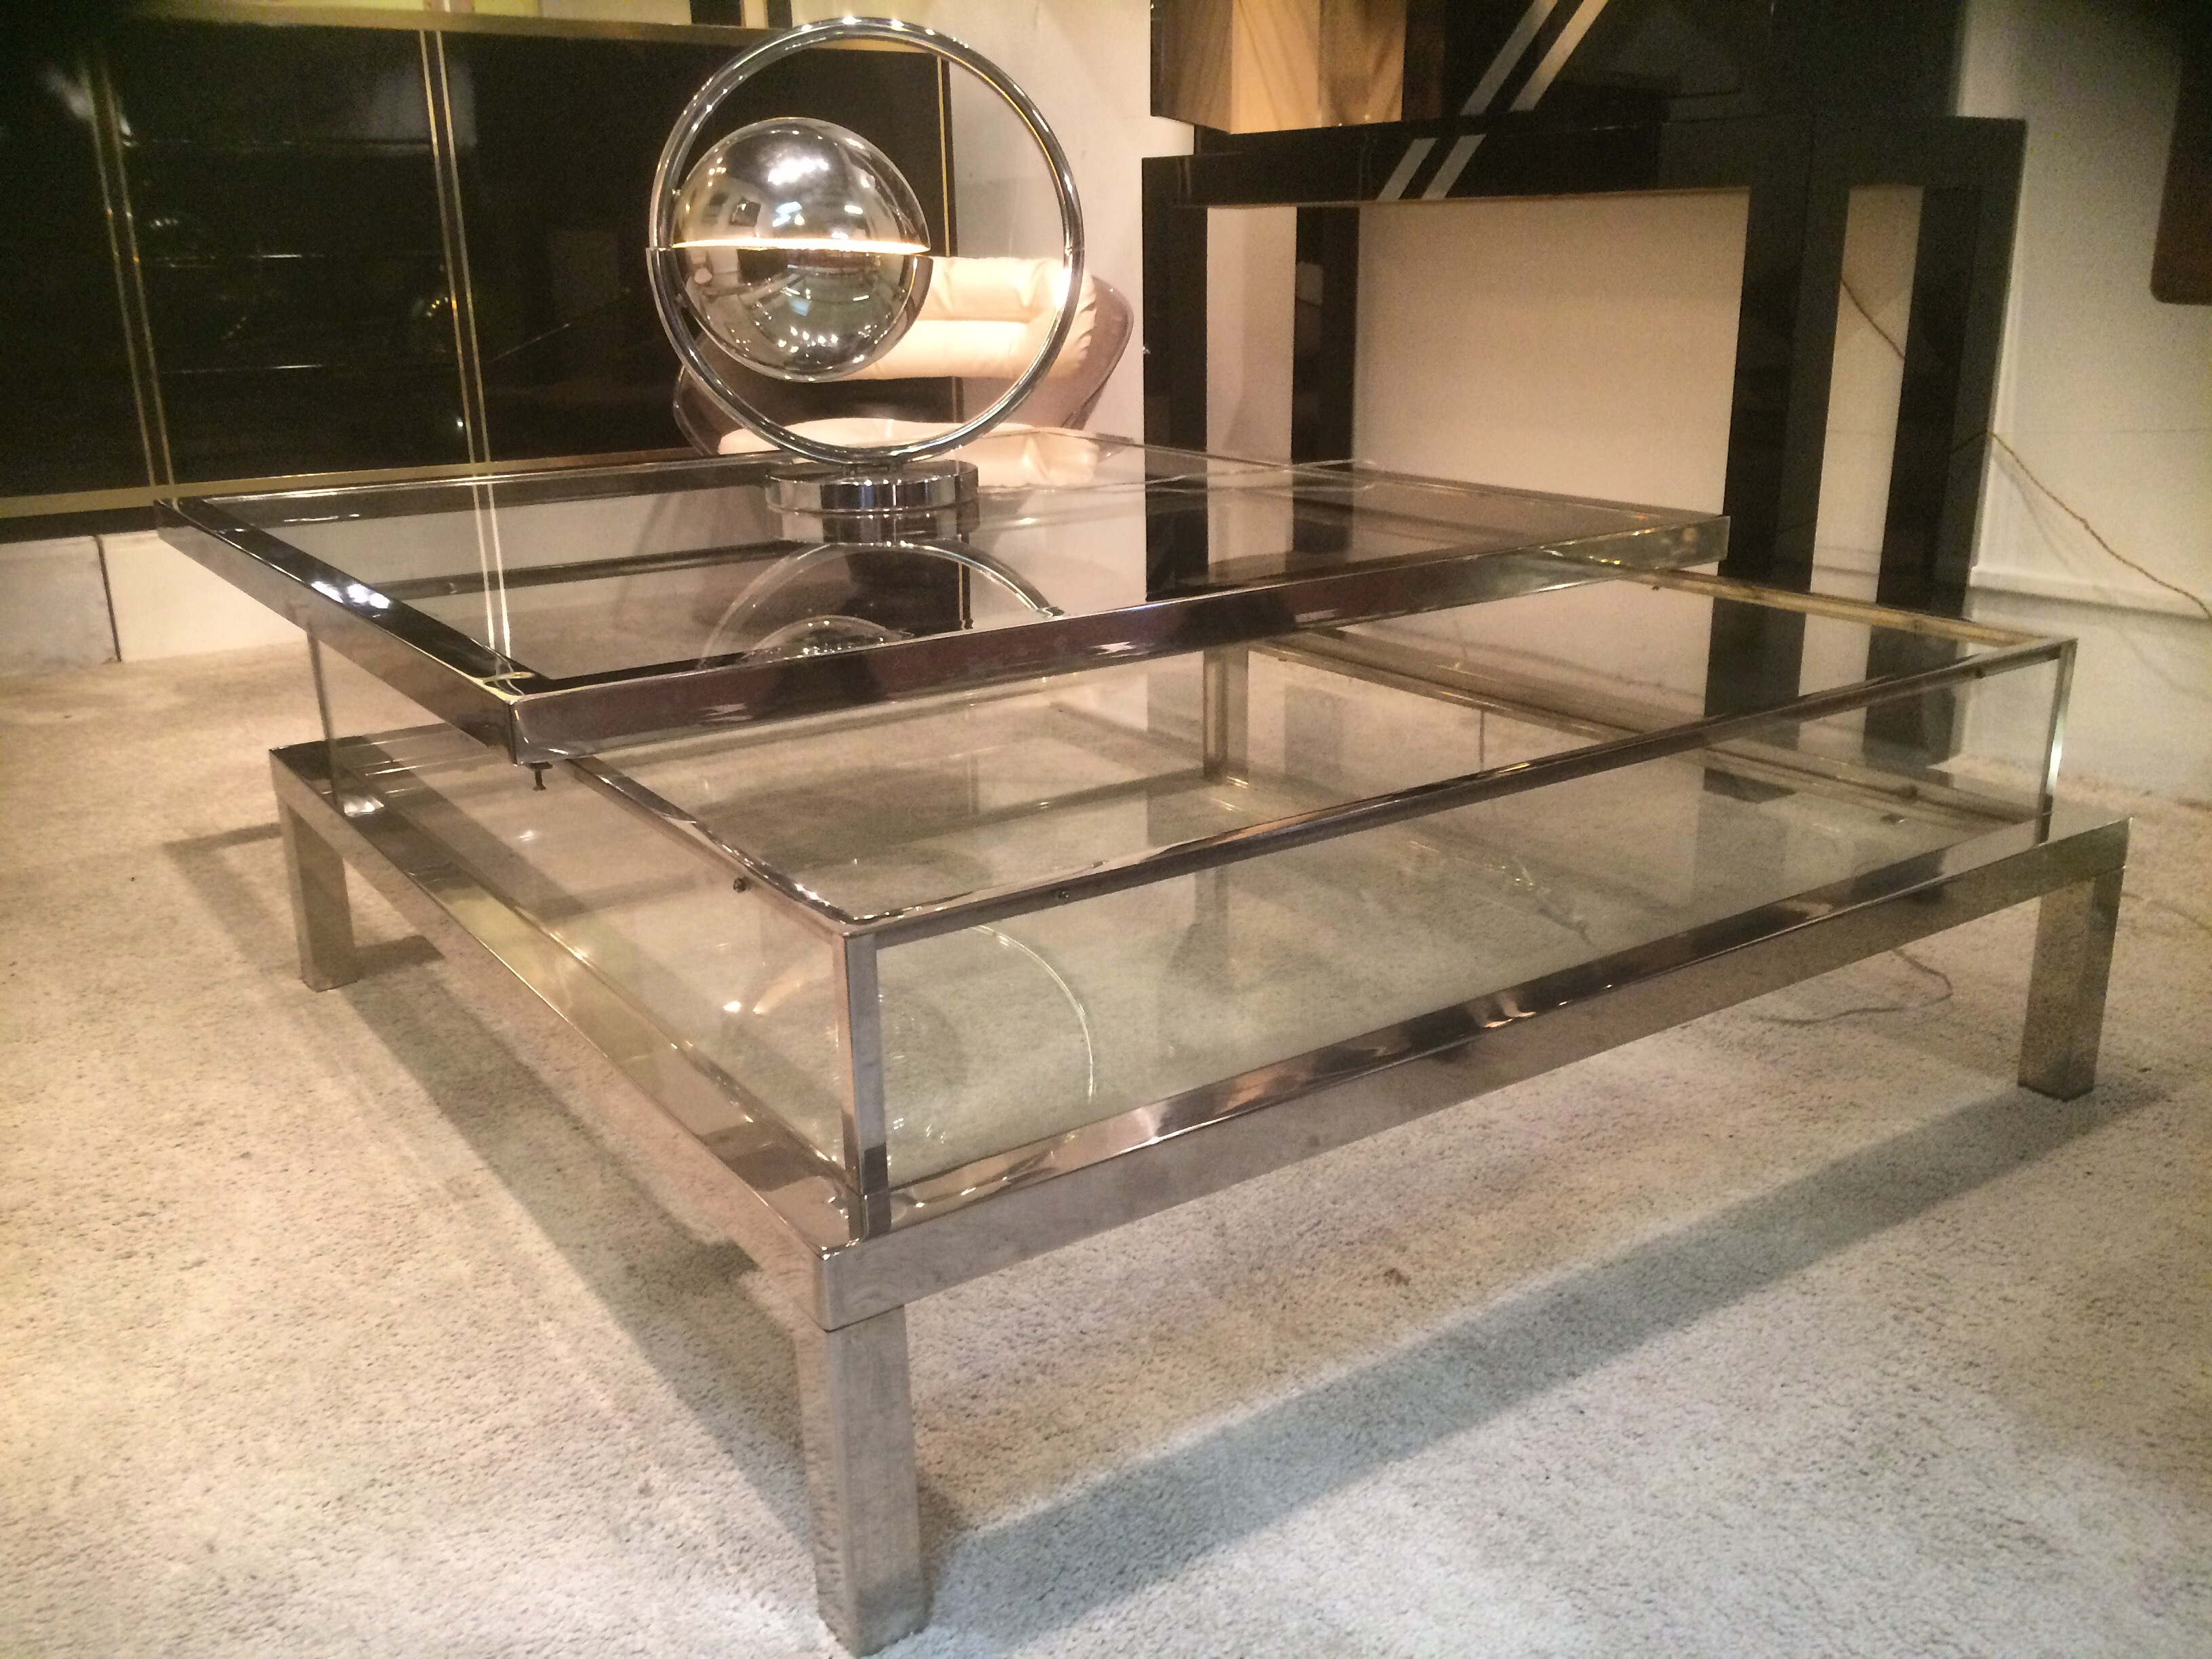 Chromed Sliding Top Table Paul Bert Serpette